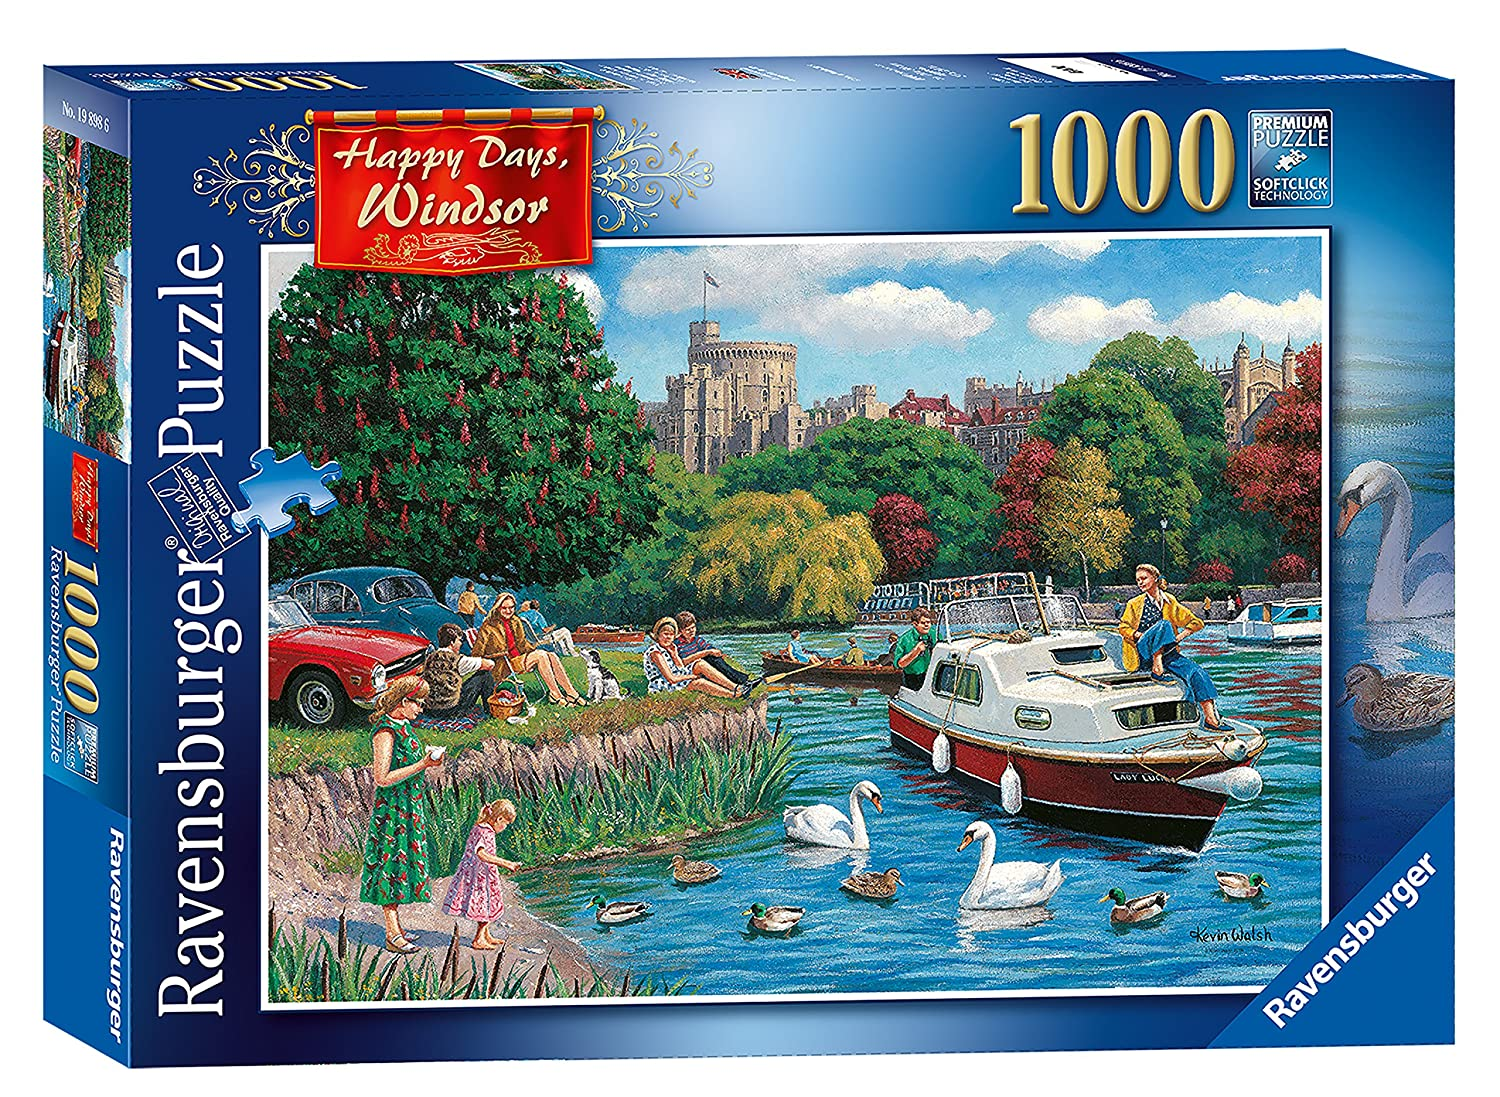 【お買い得!】 Ravensburger Happy Happy Days - B078S6WFCL Windsor 1000pcジグソーパズル Days B078S6WFCL, 鳥栖市:29351890 --- a0267596.xsph.ru